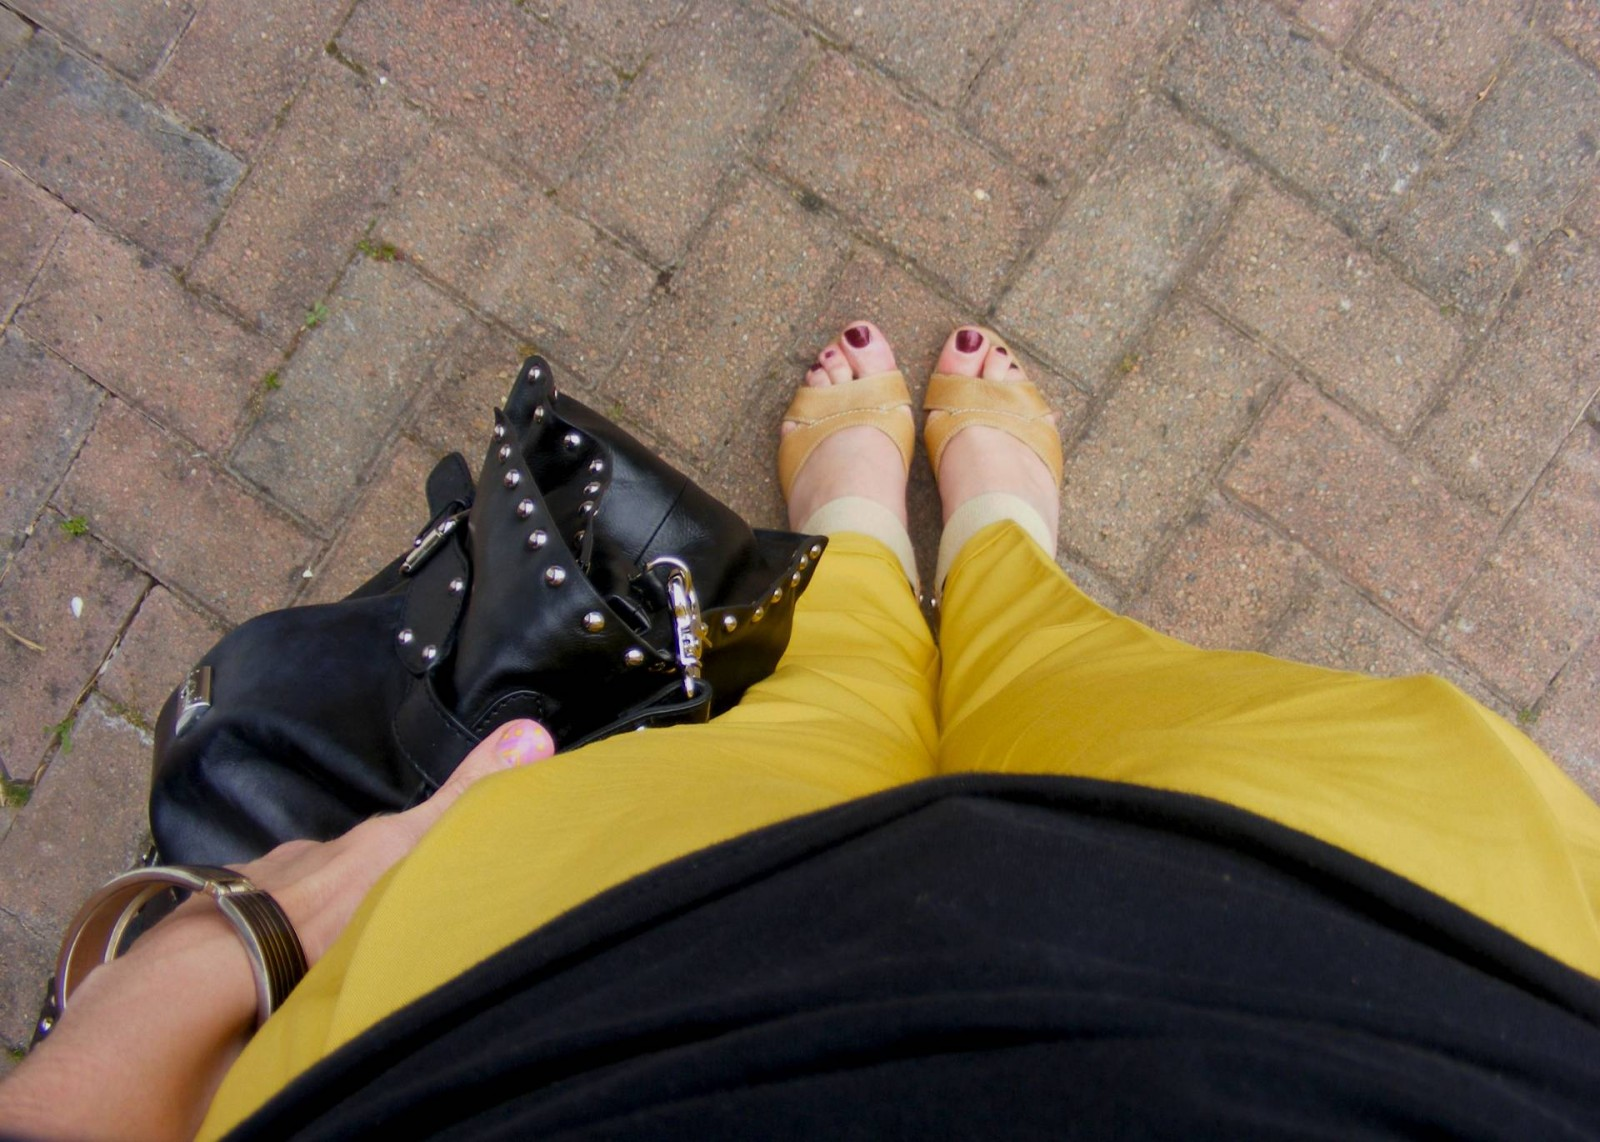 Asos mustard trousers and modalu bag